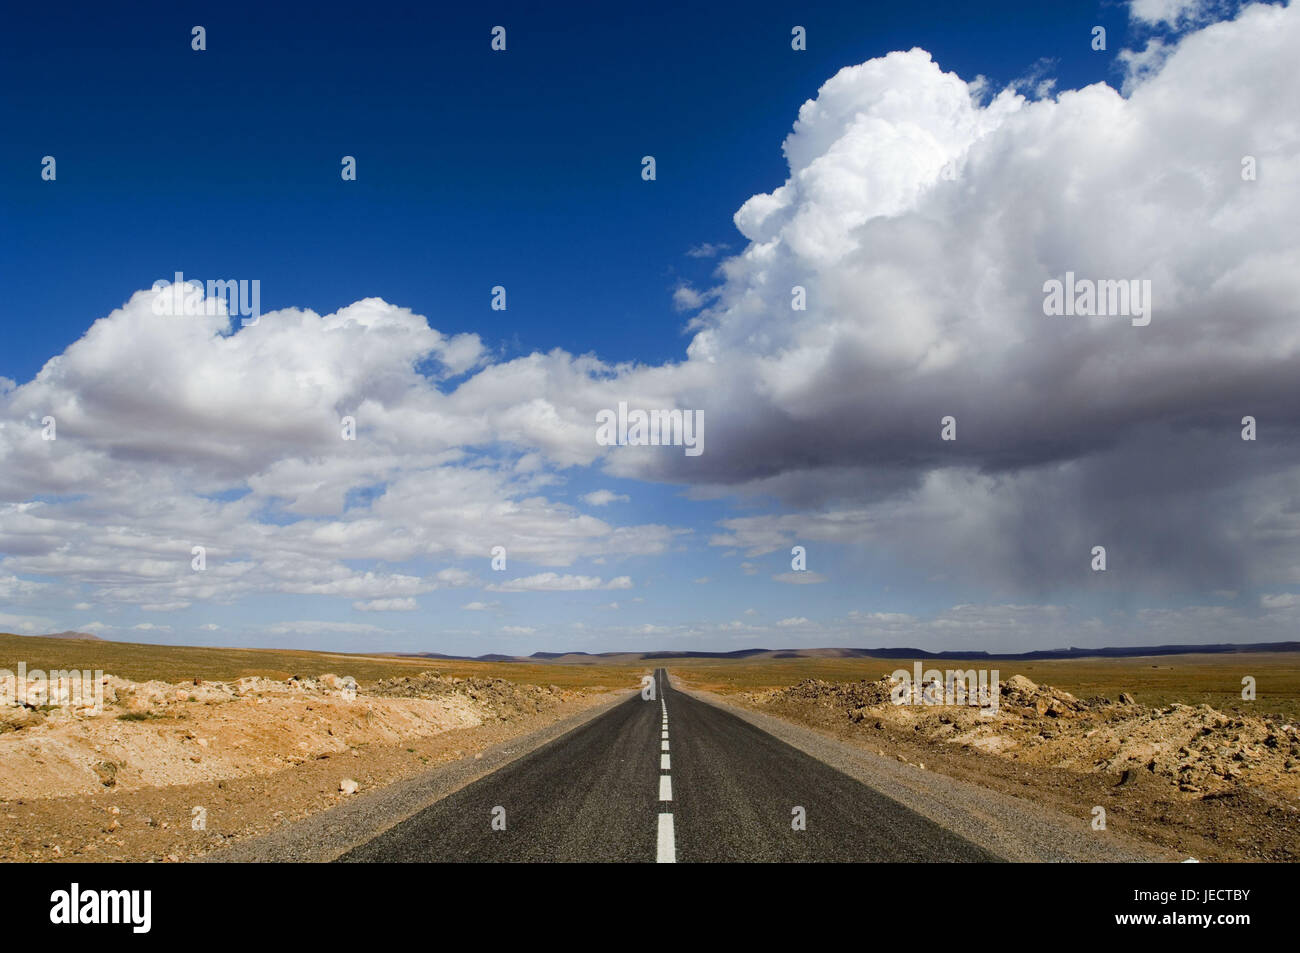 Morocco, Ouarzazate, country road, cloudy sky, Africa, North Africa, scenery, width, distance, horizon, level, vanishing - Stock Image